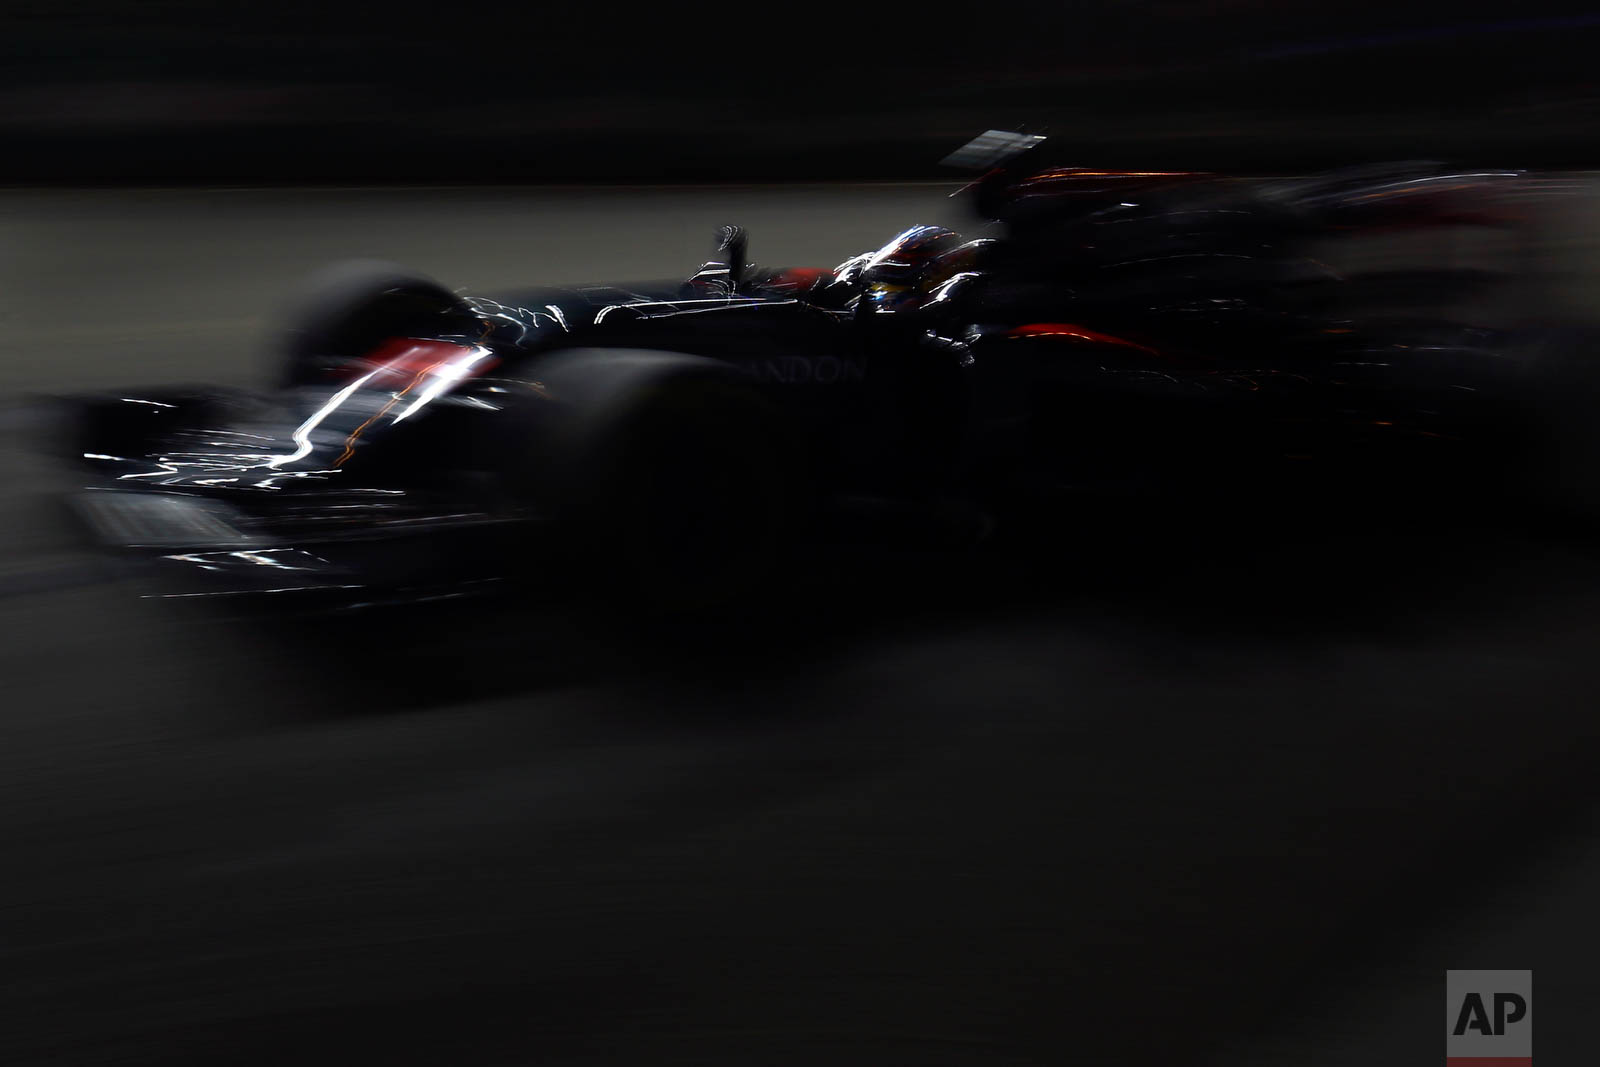 McLaren driver Fernando Alonso of Spain steers his car during the second practice session for the Singapore Formula One Grand Prix on the Marina Bay City Circuit in Singapore, Friday, Sept. 16, 2016. (AP Photo/Yong Teck Lim)